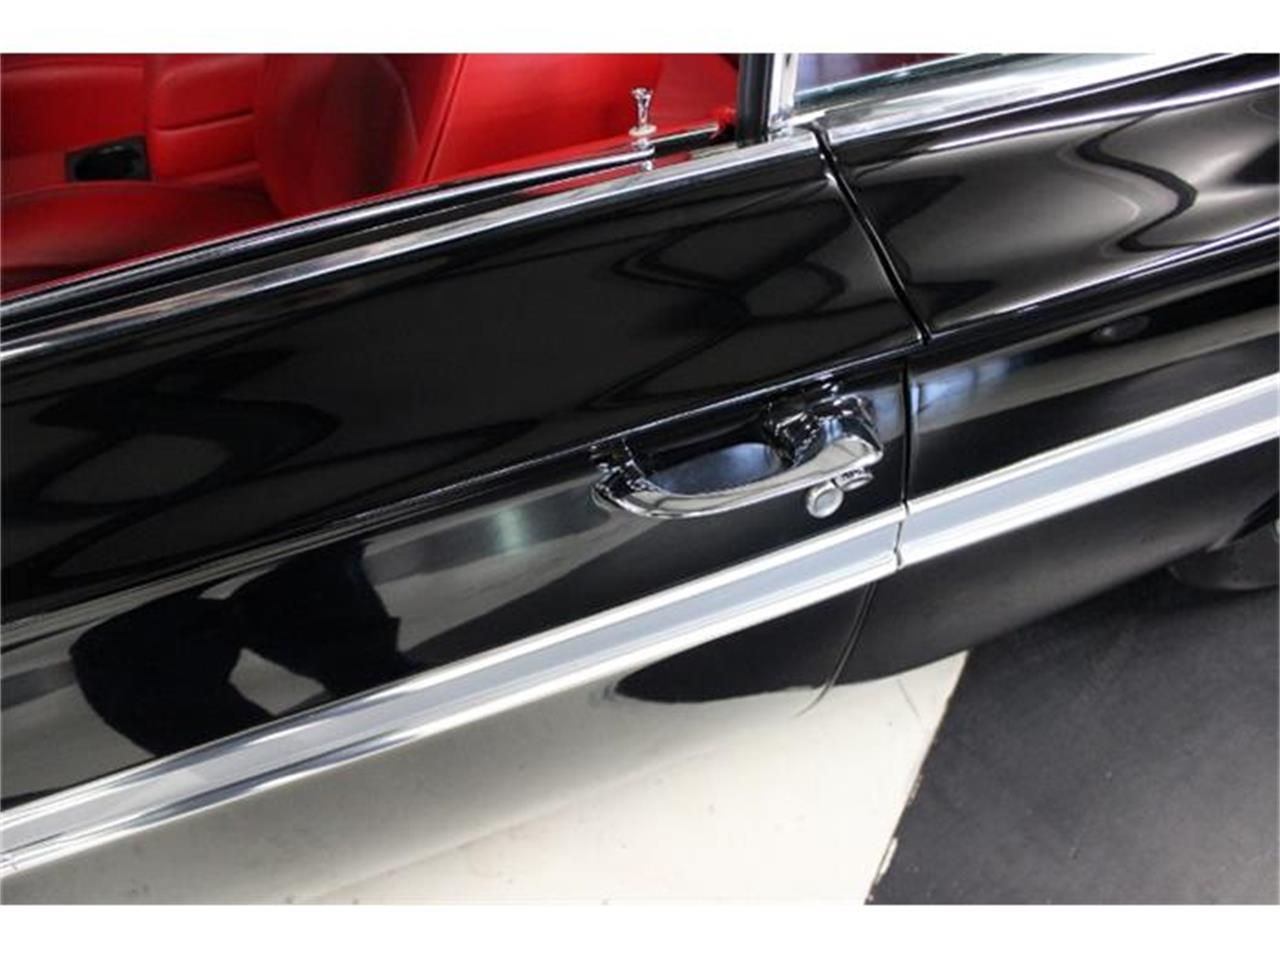 Large Picture of '61 Chevrolet Impala located in Lillington North Carolina - $65,000.00 Offered by East Coast Classic Cars - HJ60